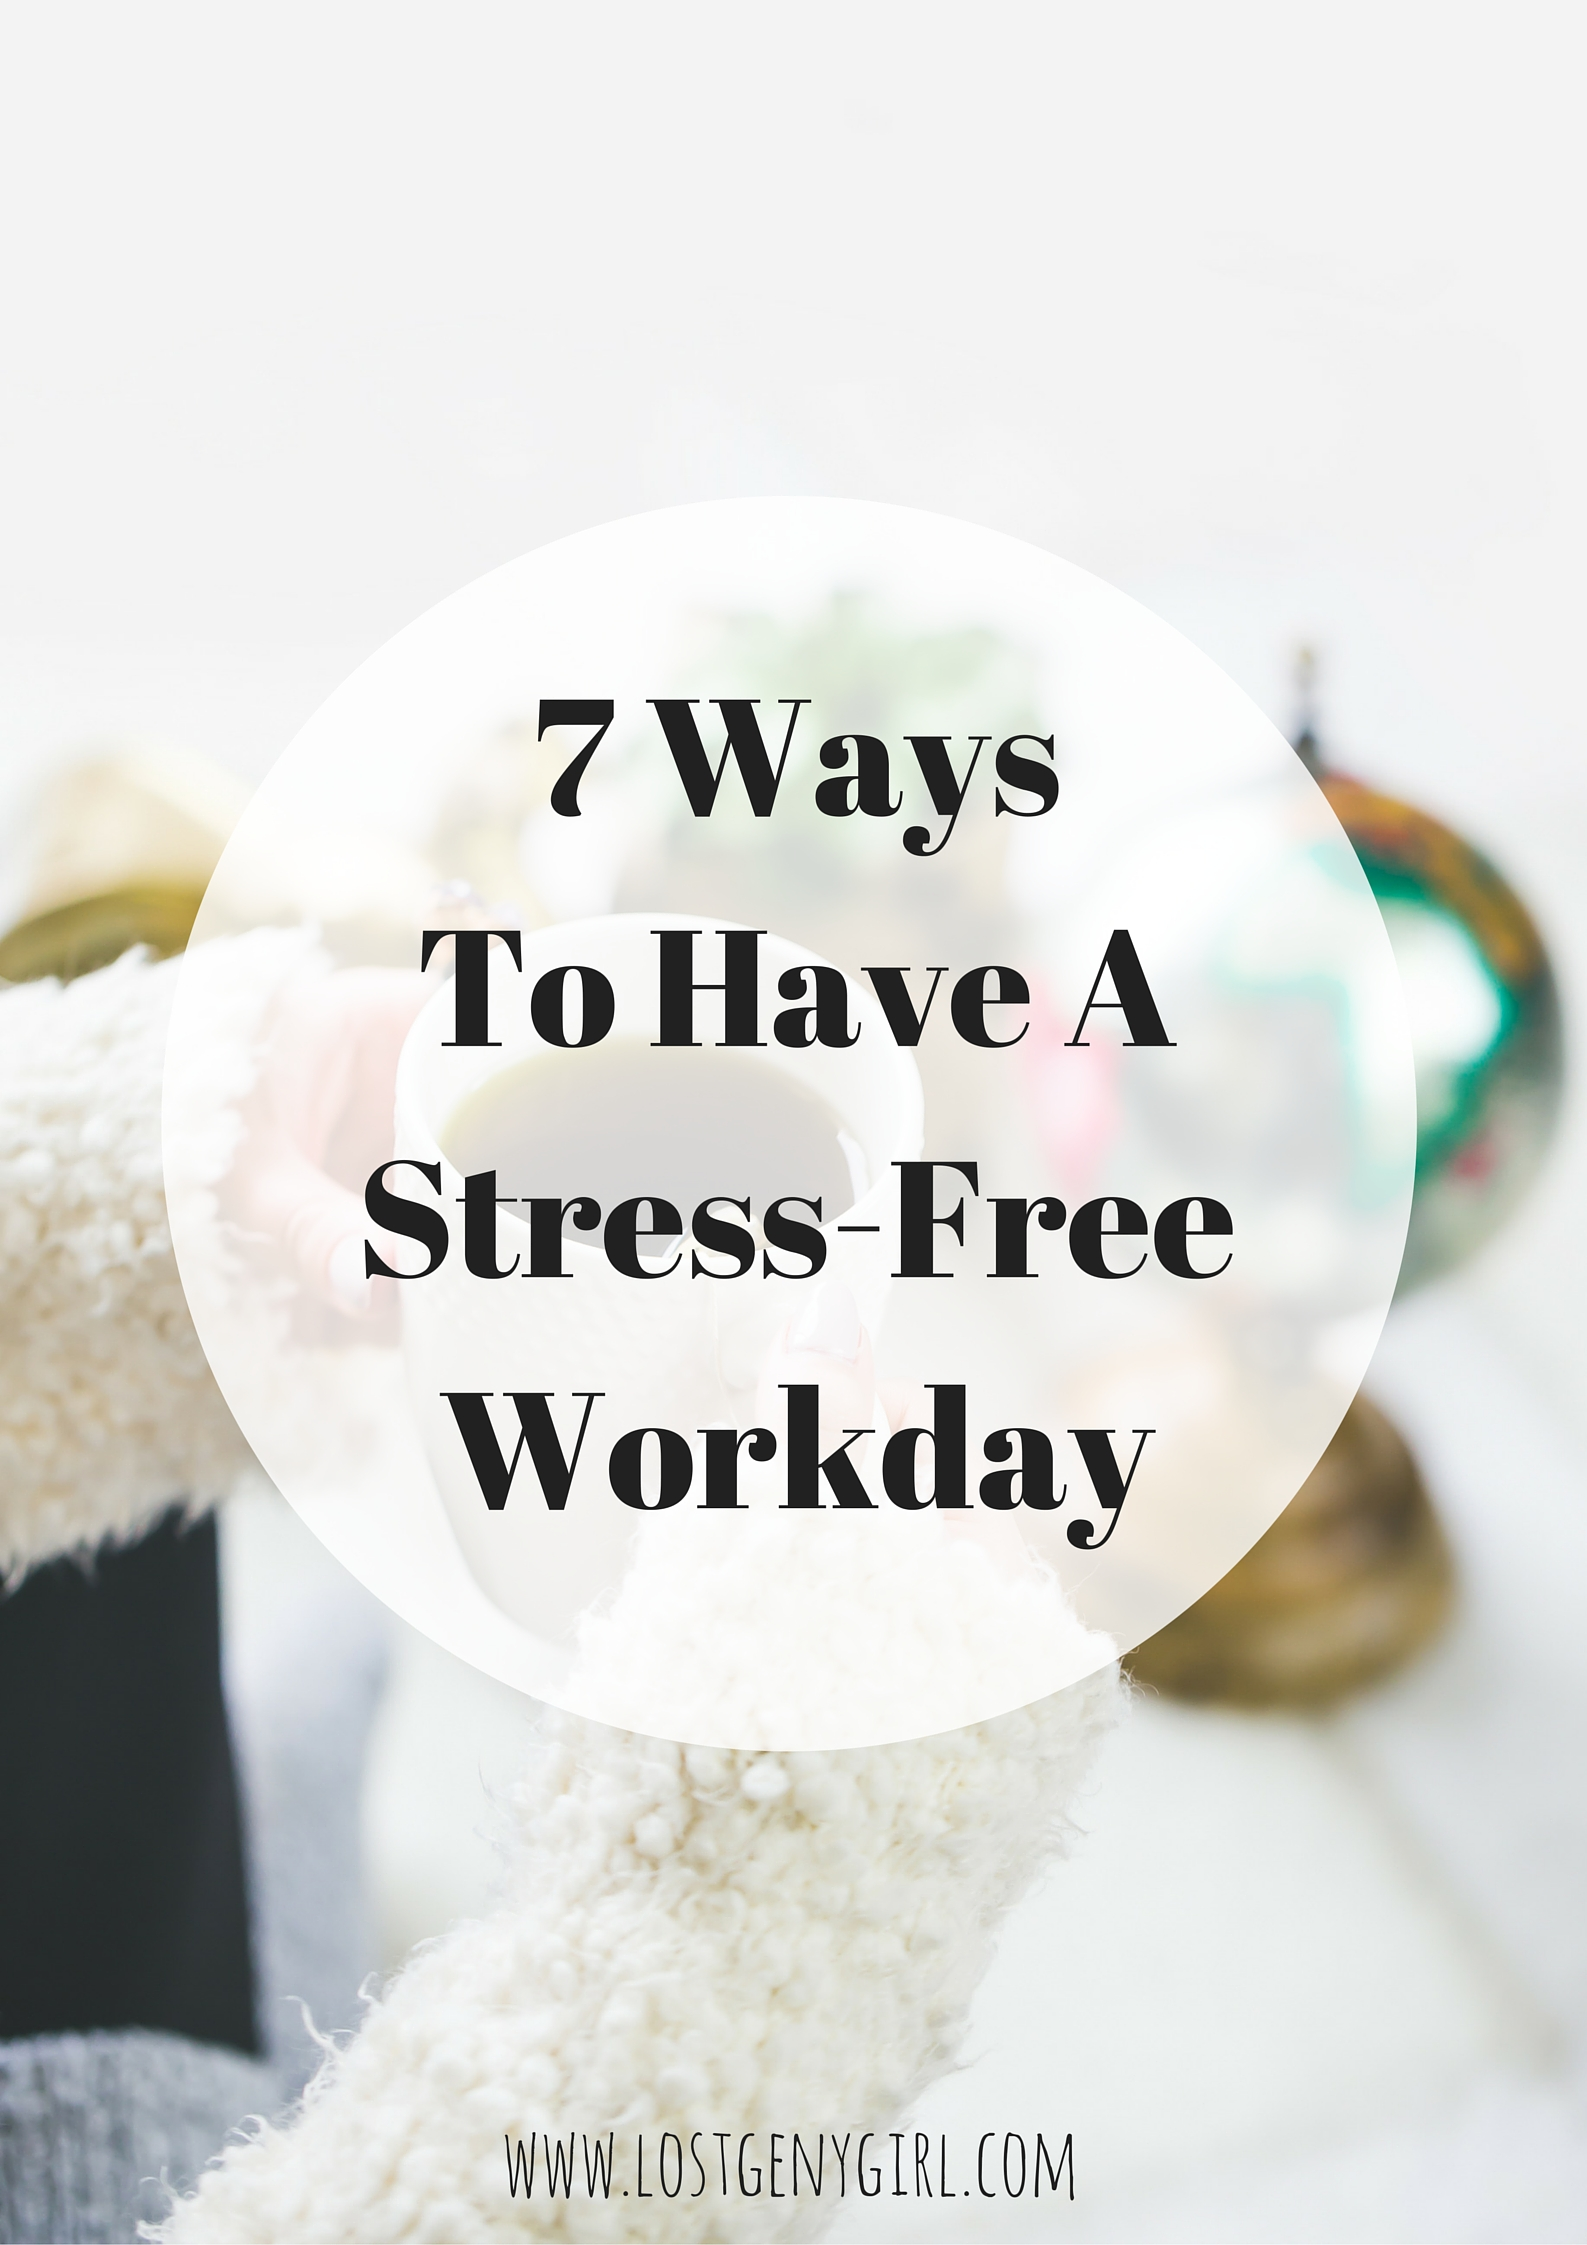 7 Ways To Have A Stress-Free Workday